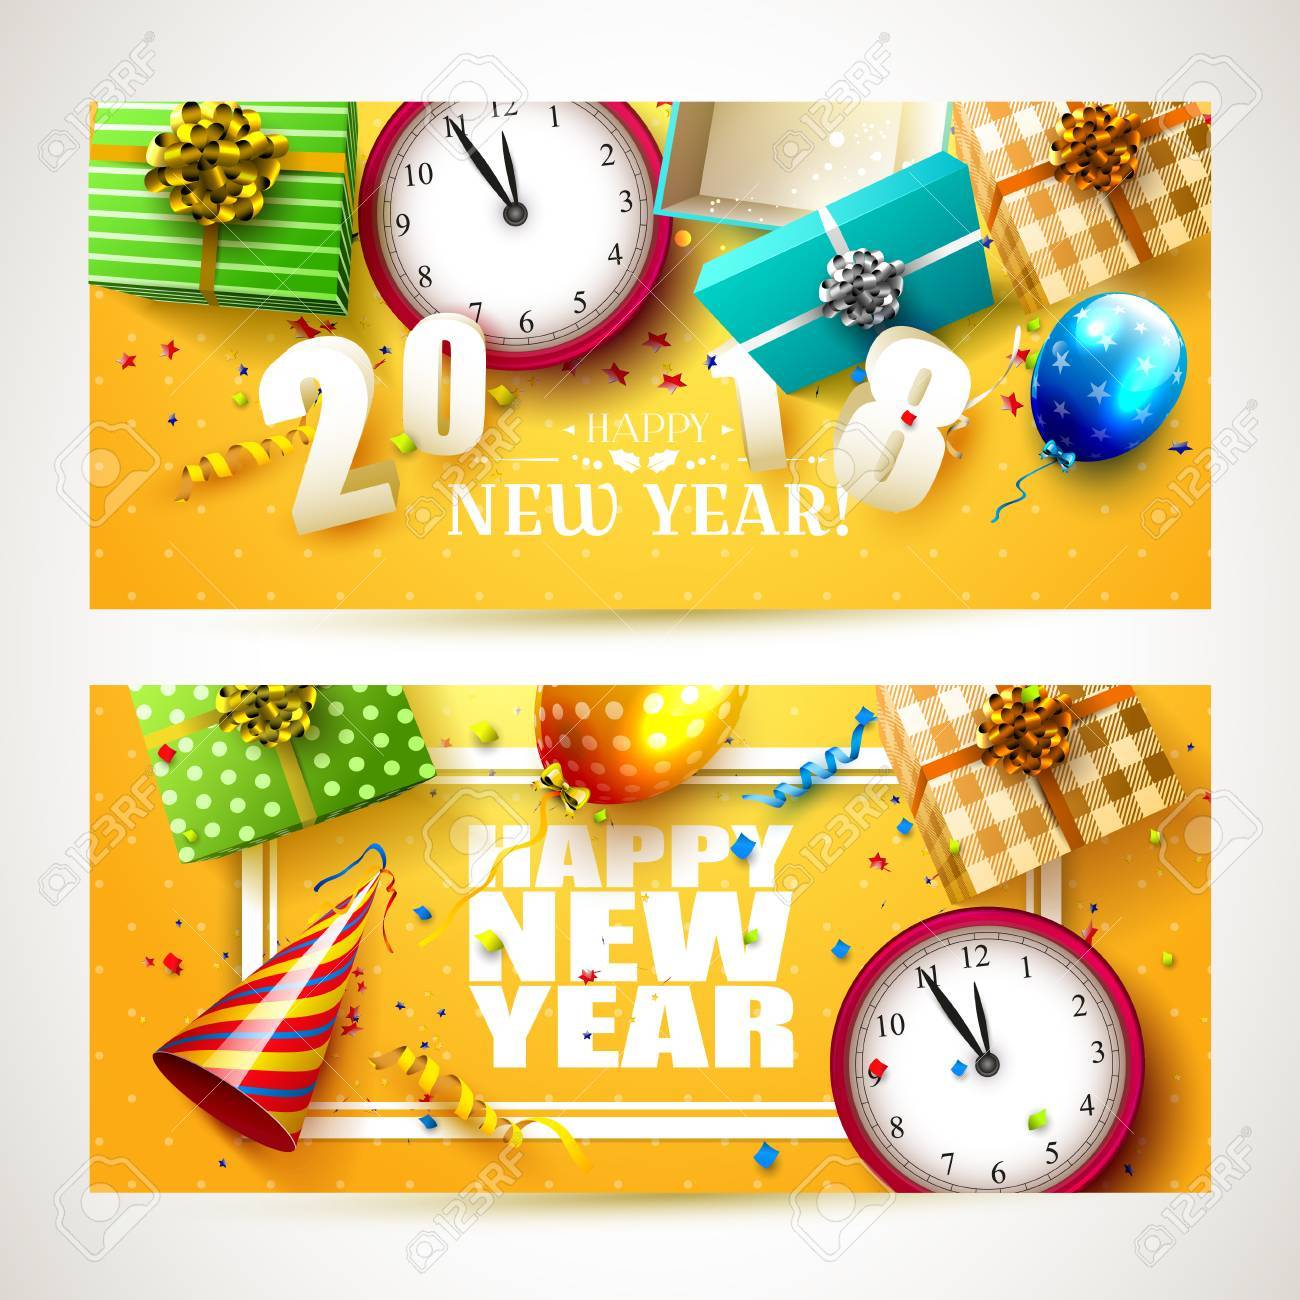 happy new year 2018 headers or banners with colorful gift boxes balloons and party